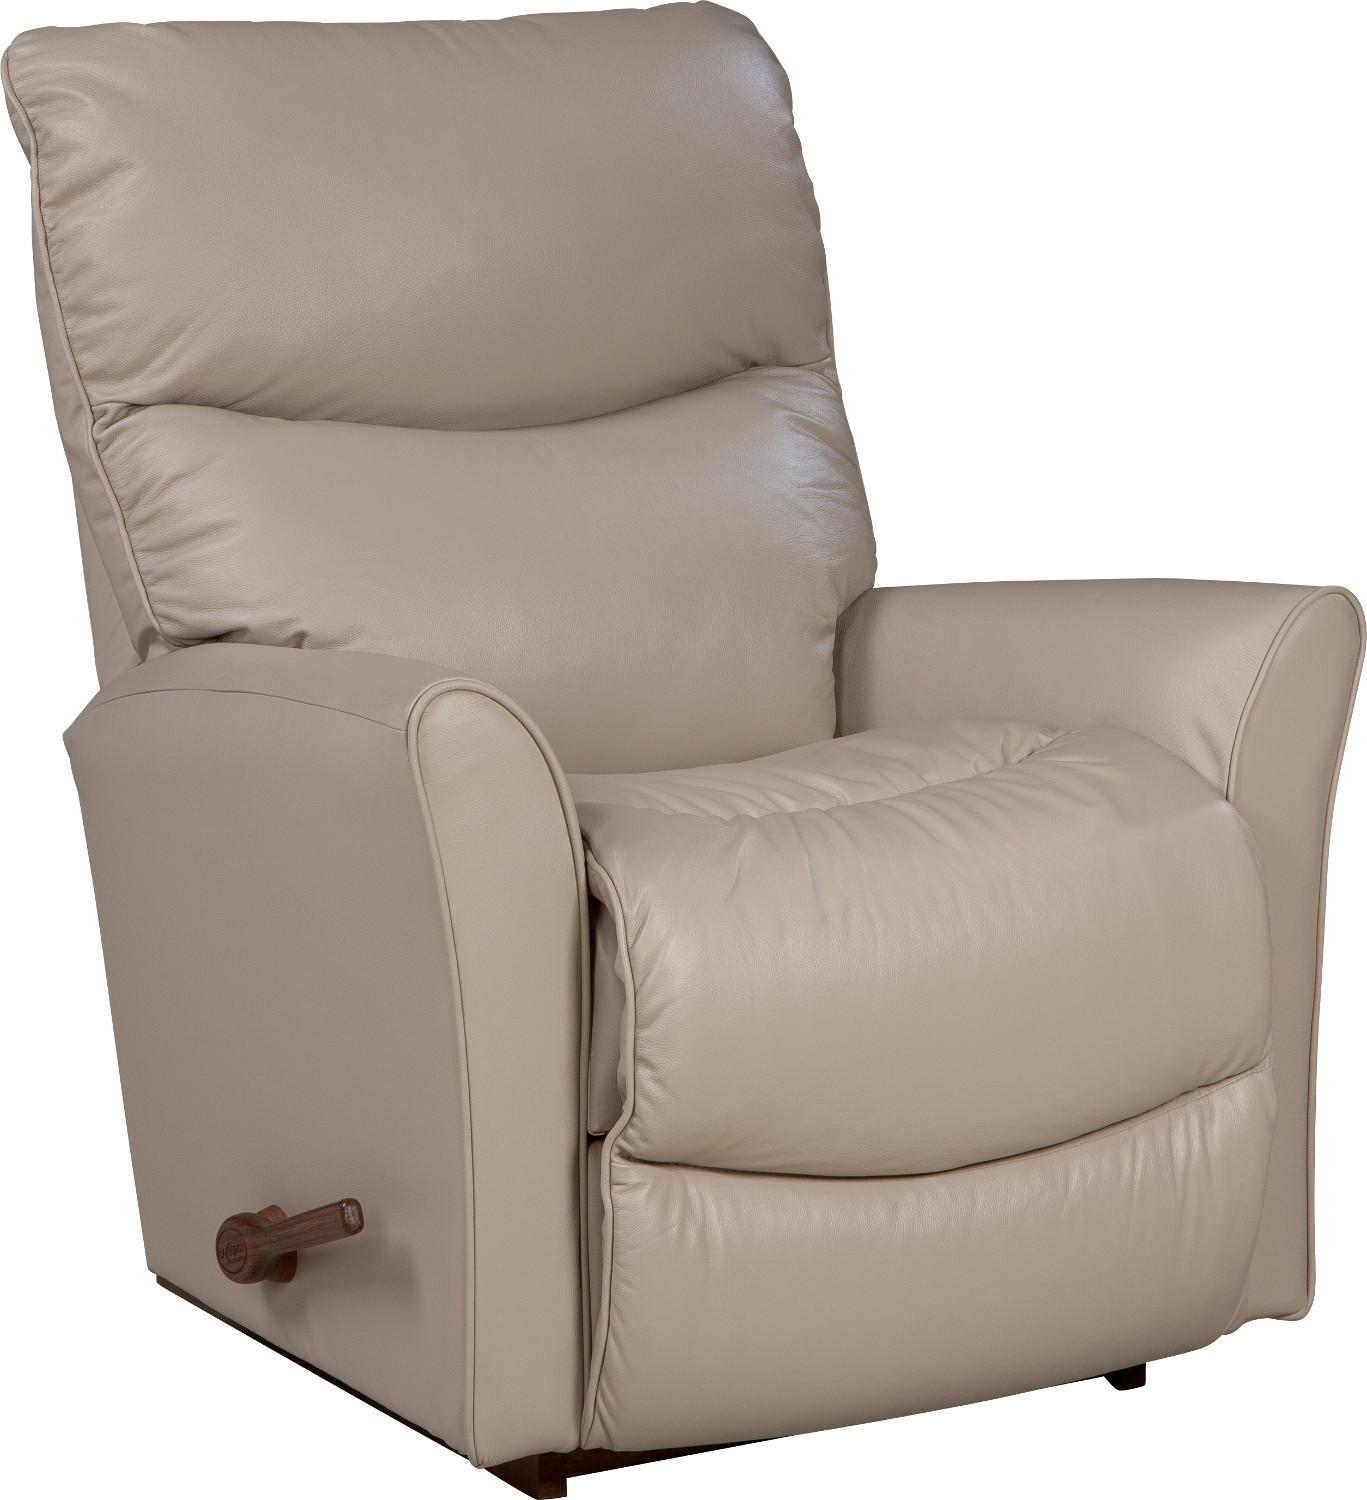 Image of: Small Swivel Rocking Chair